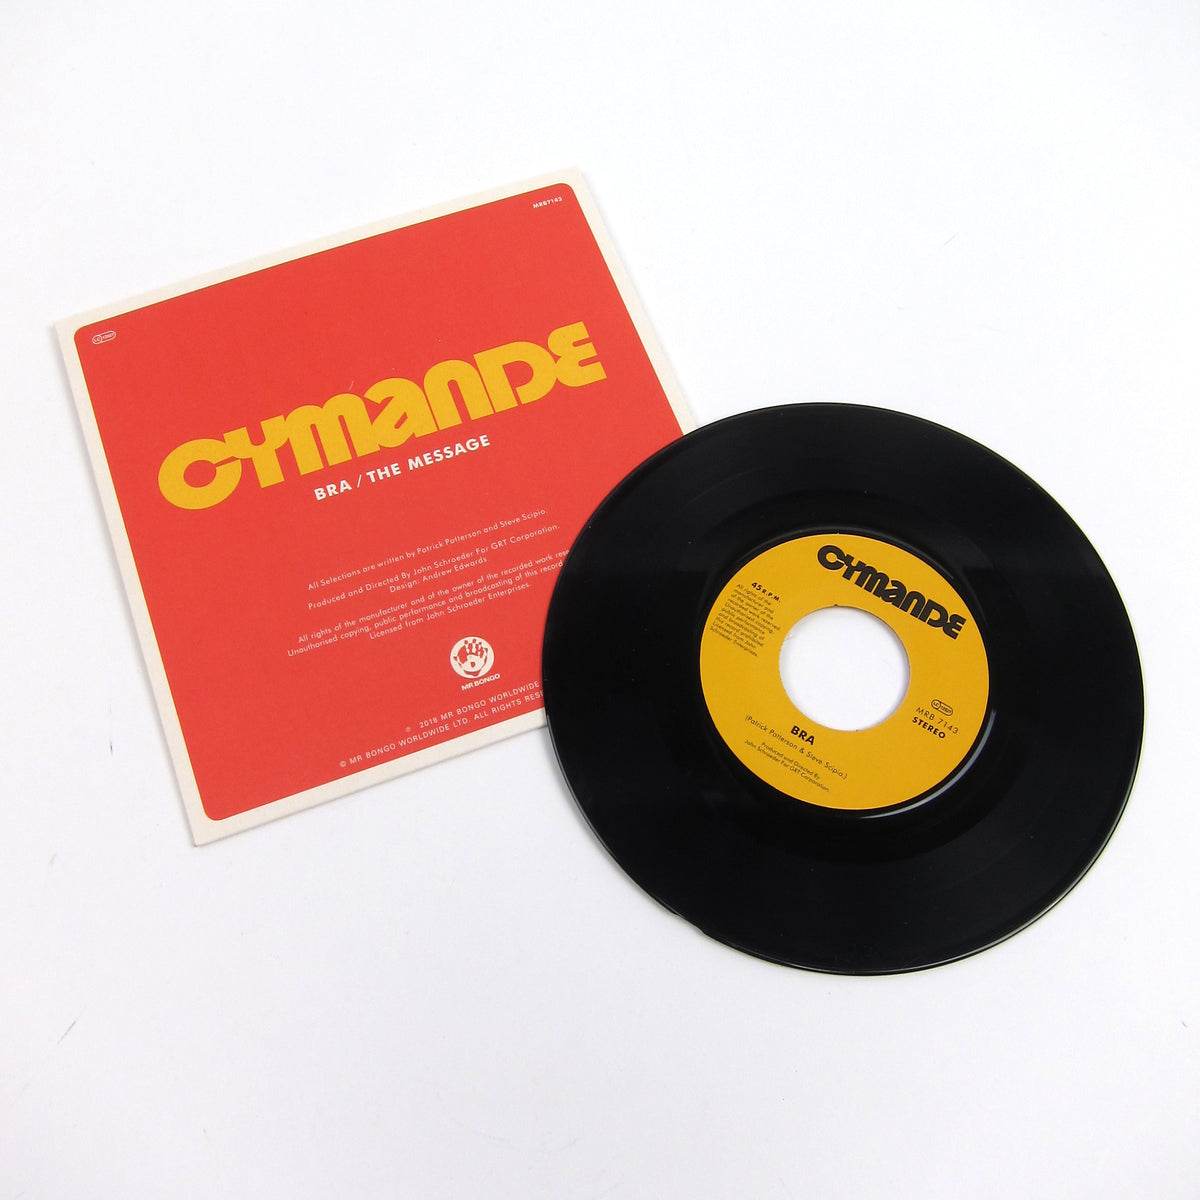 Cymande: Bra / The Message Vinyl 7""